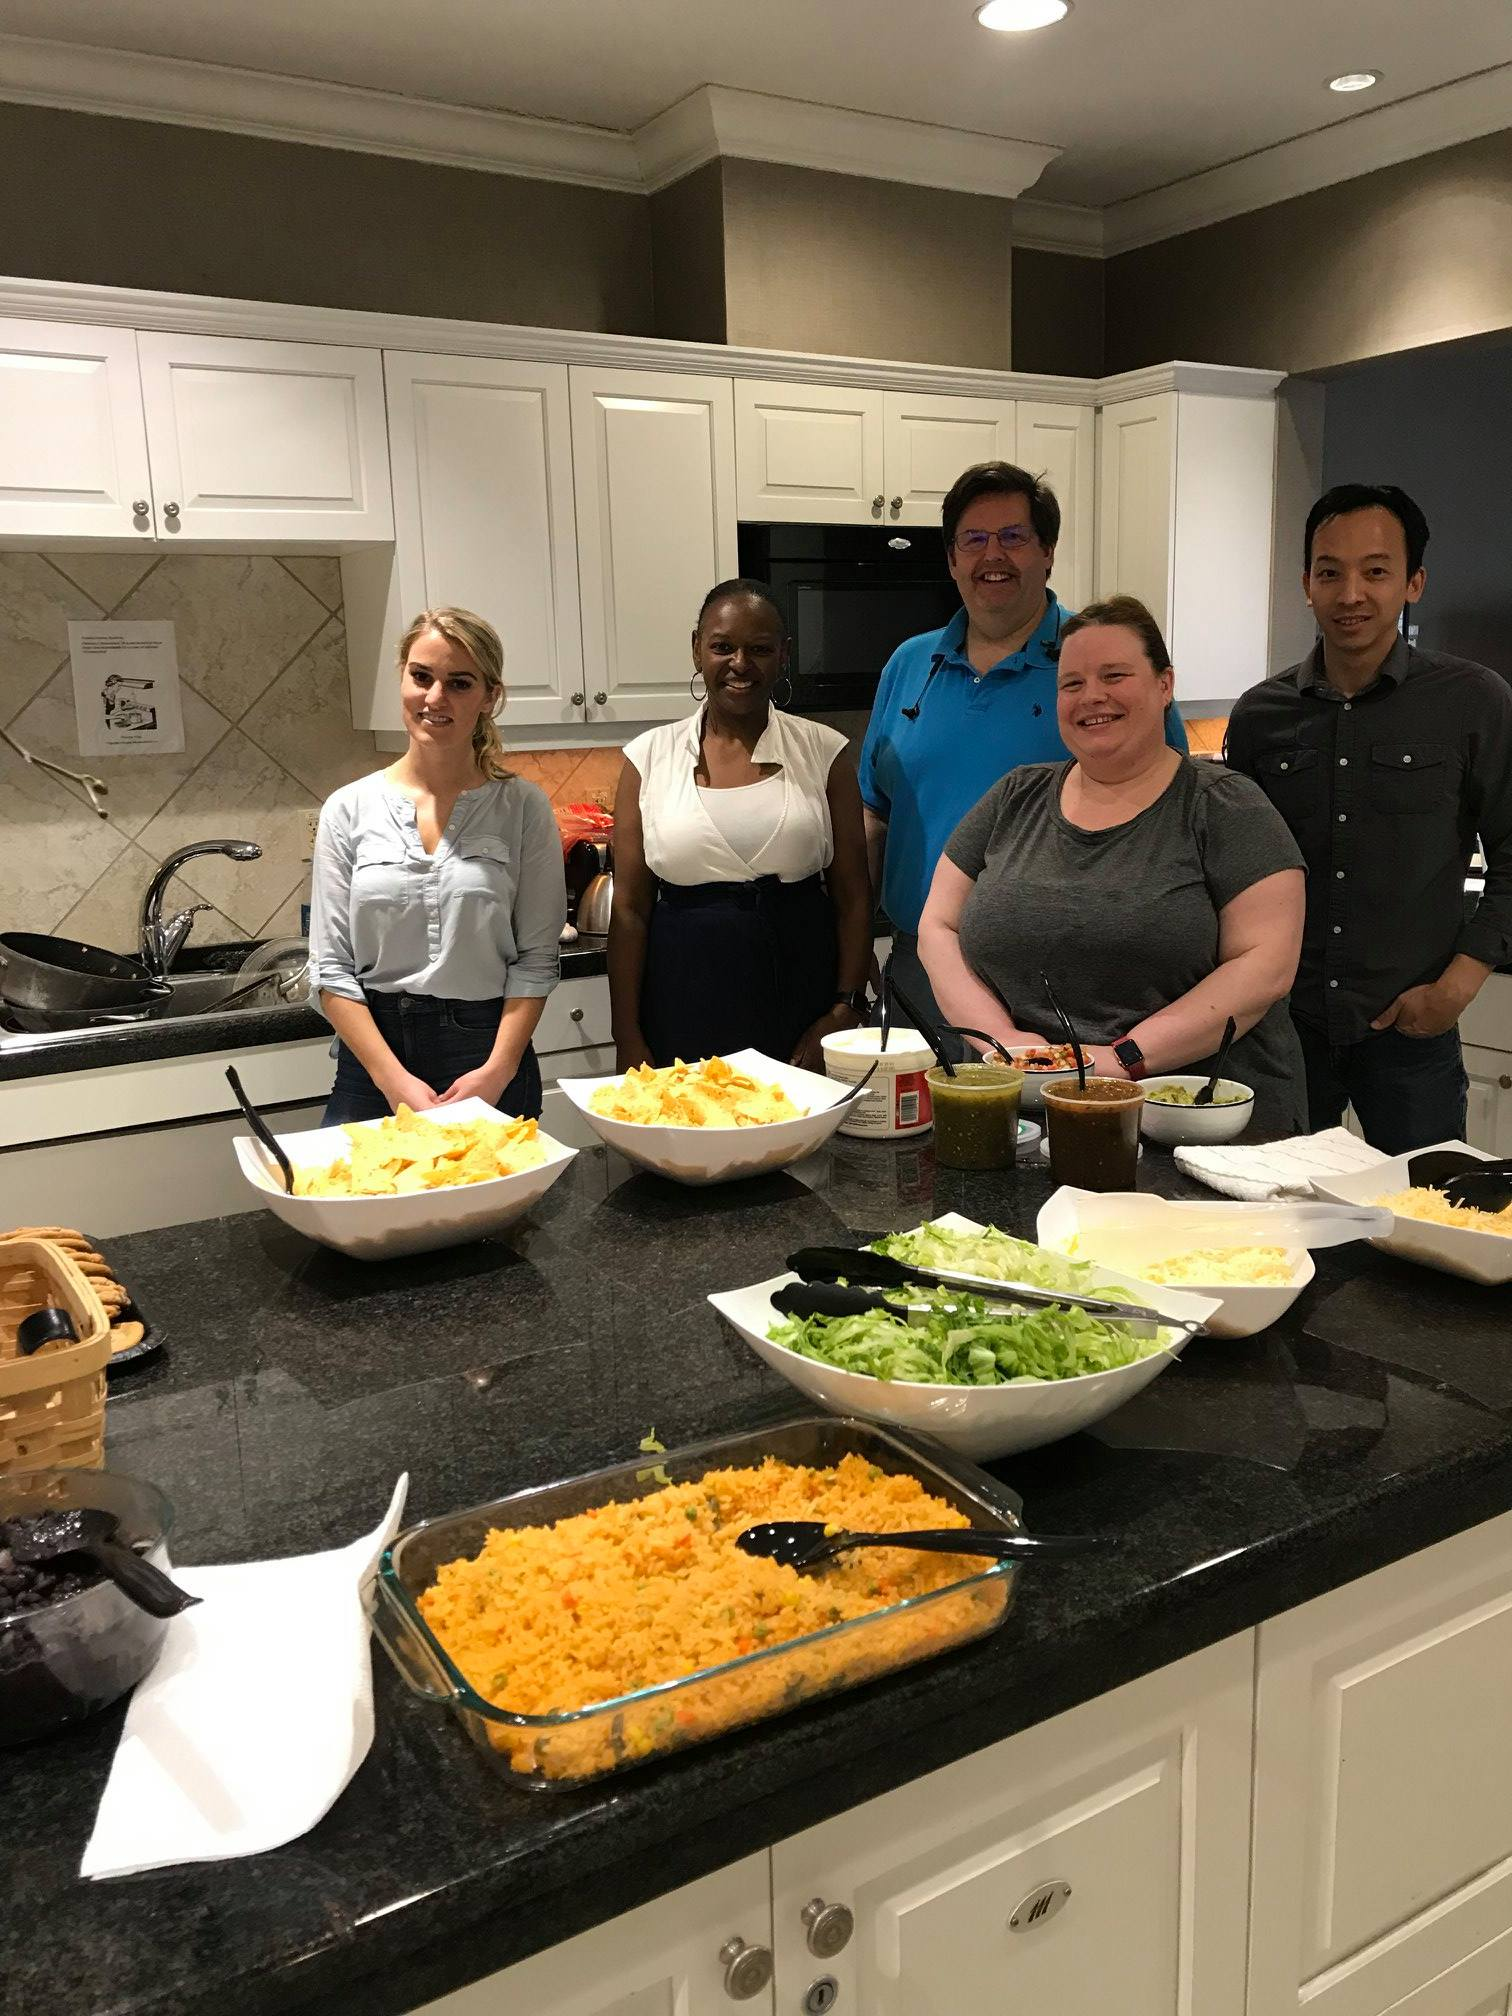 Windwalker team members volunteering at the Fisher House in Washington, DC by preparing dinner for its residents